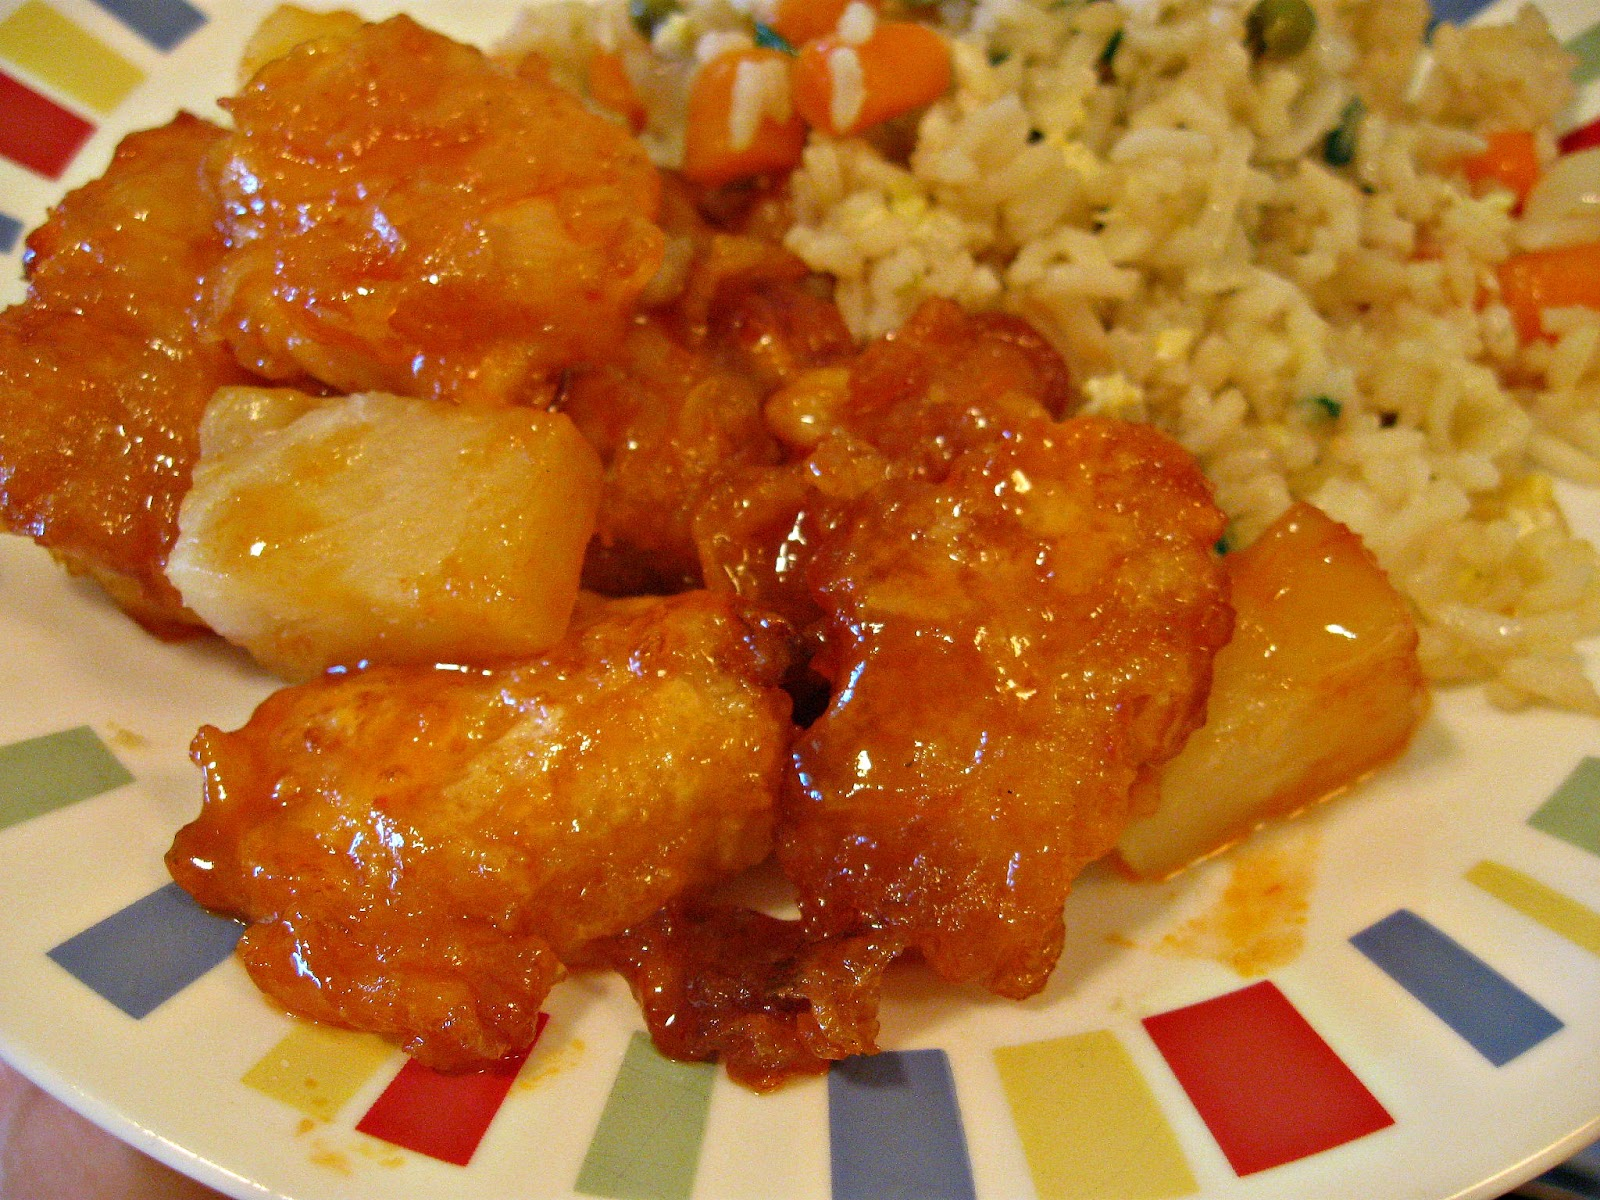 ... americanized orange sweet and sour chicken i think it s delicious and